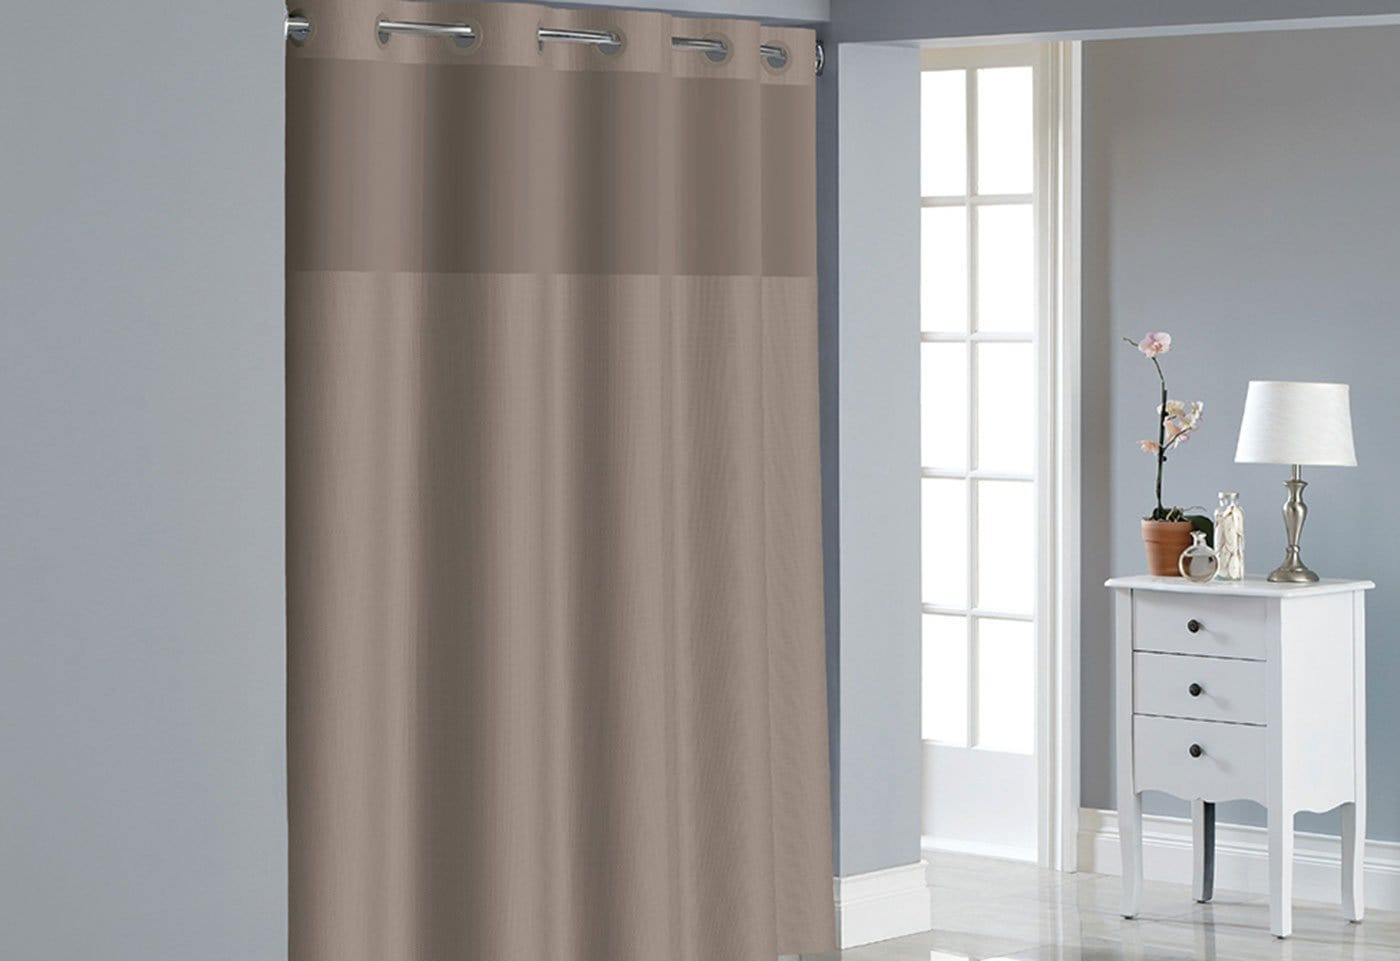 Hookless® Dobby Texture Shower Curtain Includes Snap On/Off Replaceable Liner - 71 x 74 / Desert Taupe